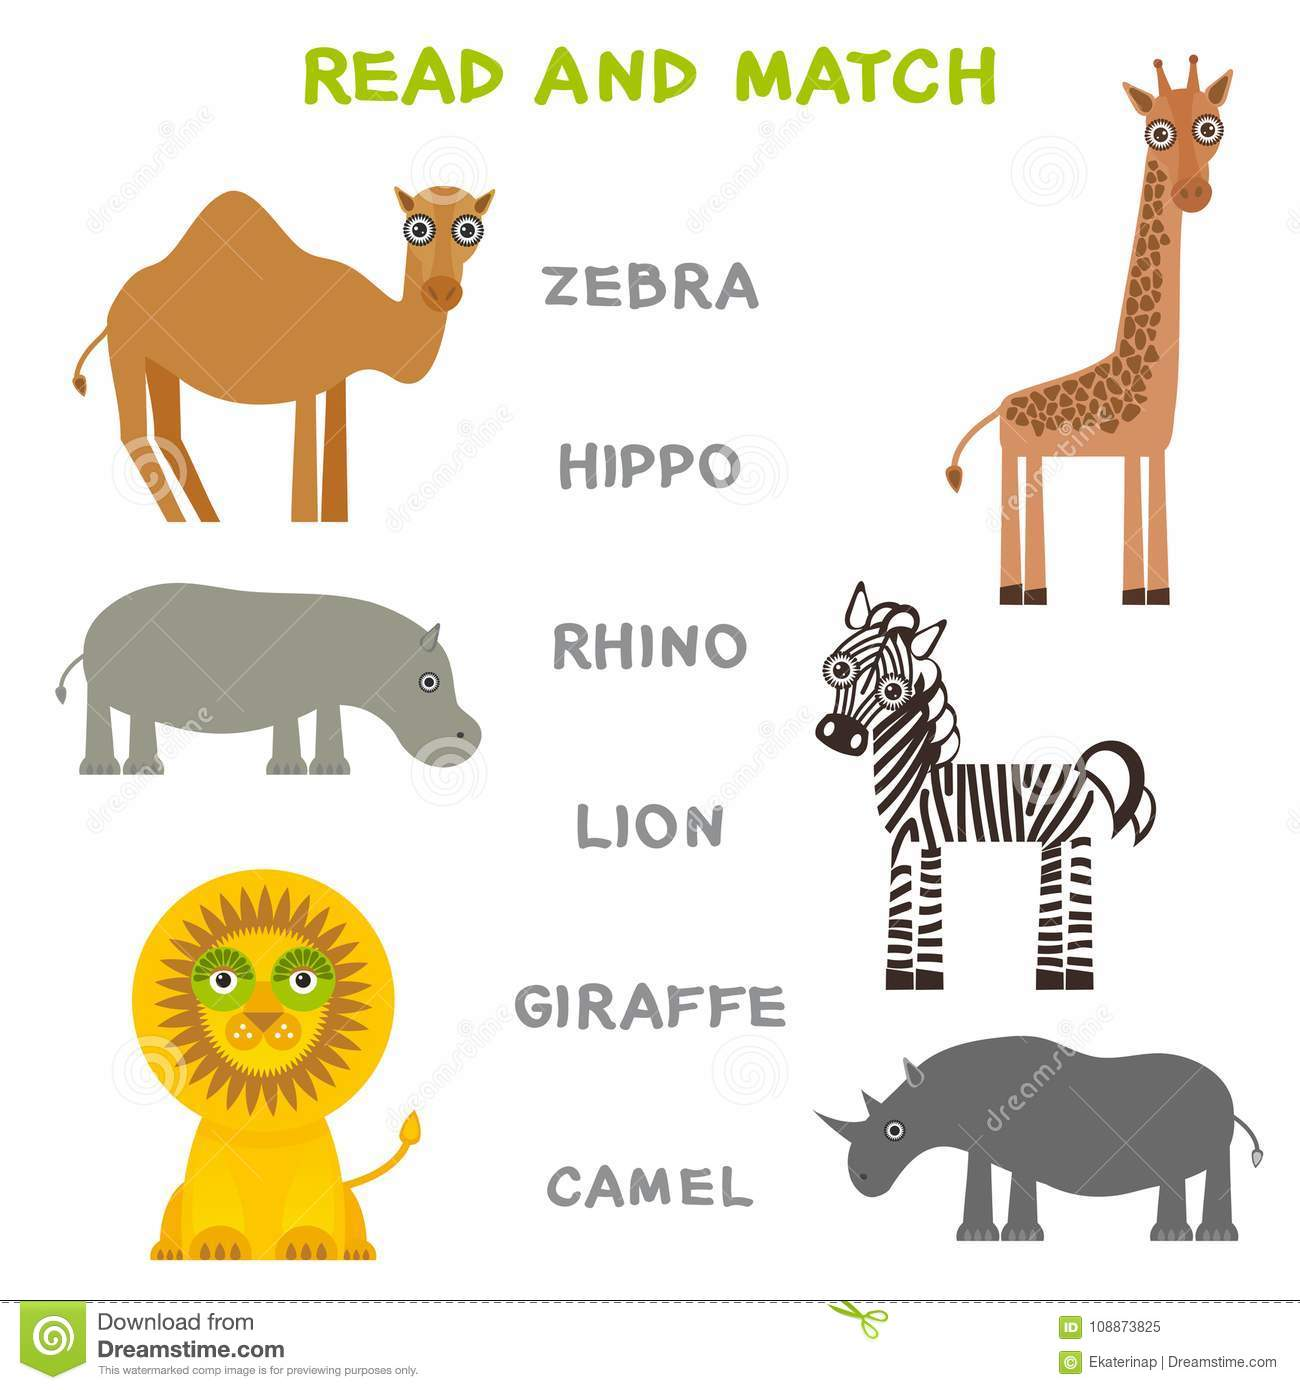 Kids Words Learning Game Worksheet Read And Match Funny Animals Zebra Hippo Rhino Lion Giraffe